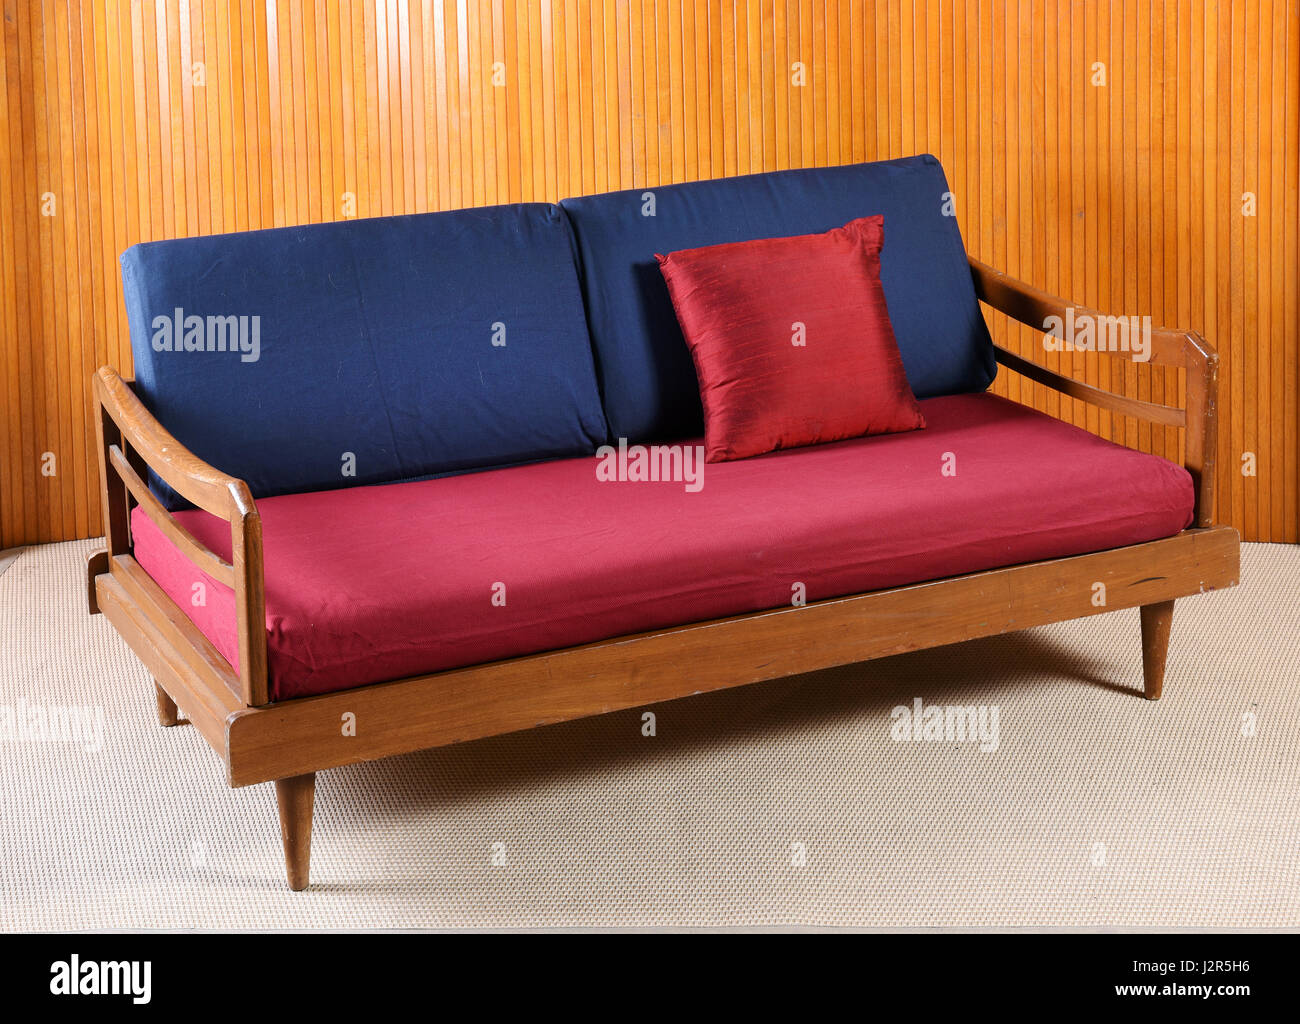 Vintage Couch Upholstered Red And Blue Vintage Sofa With A Wooden Frame And